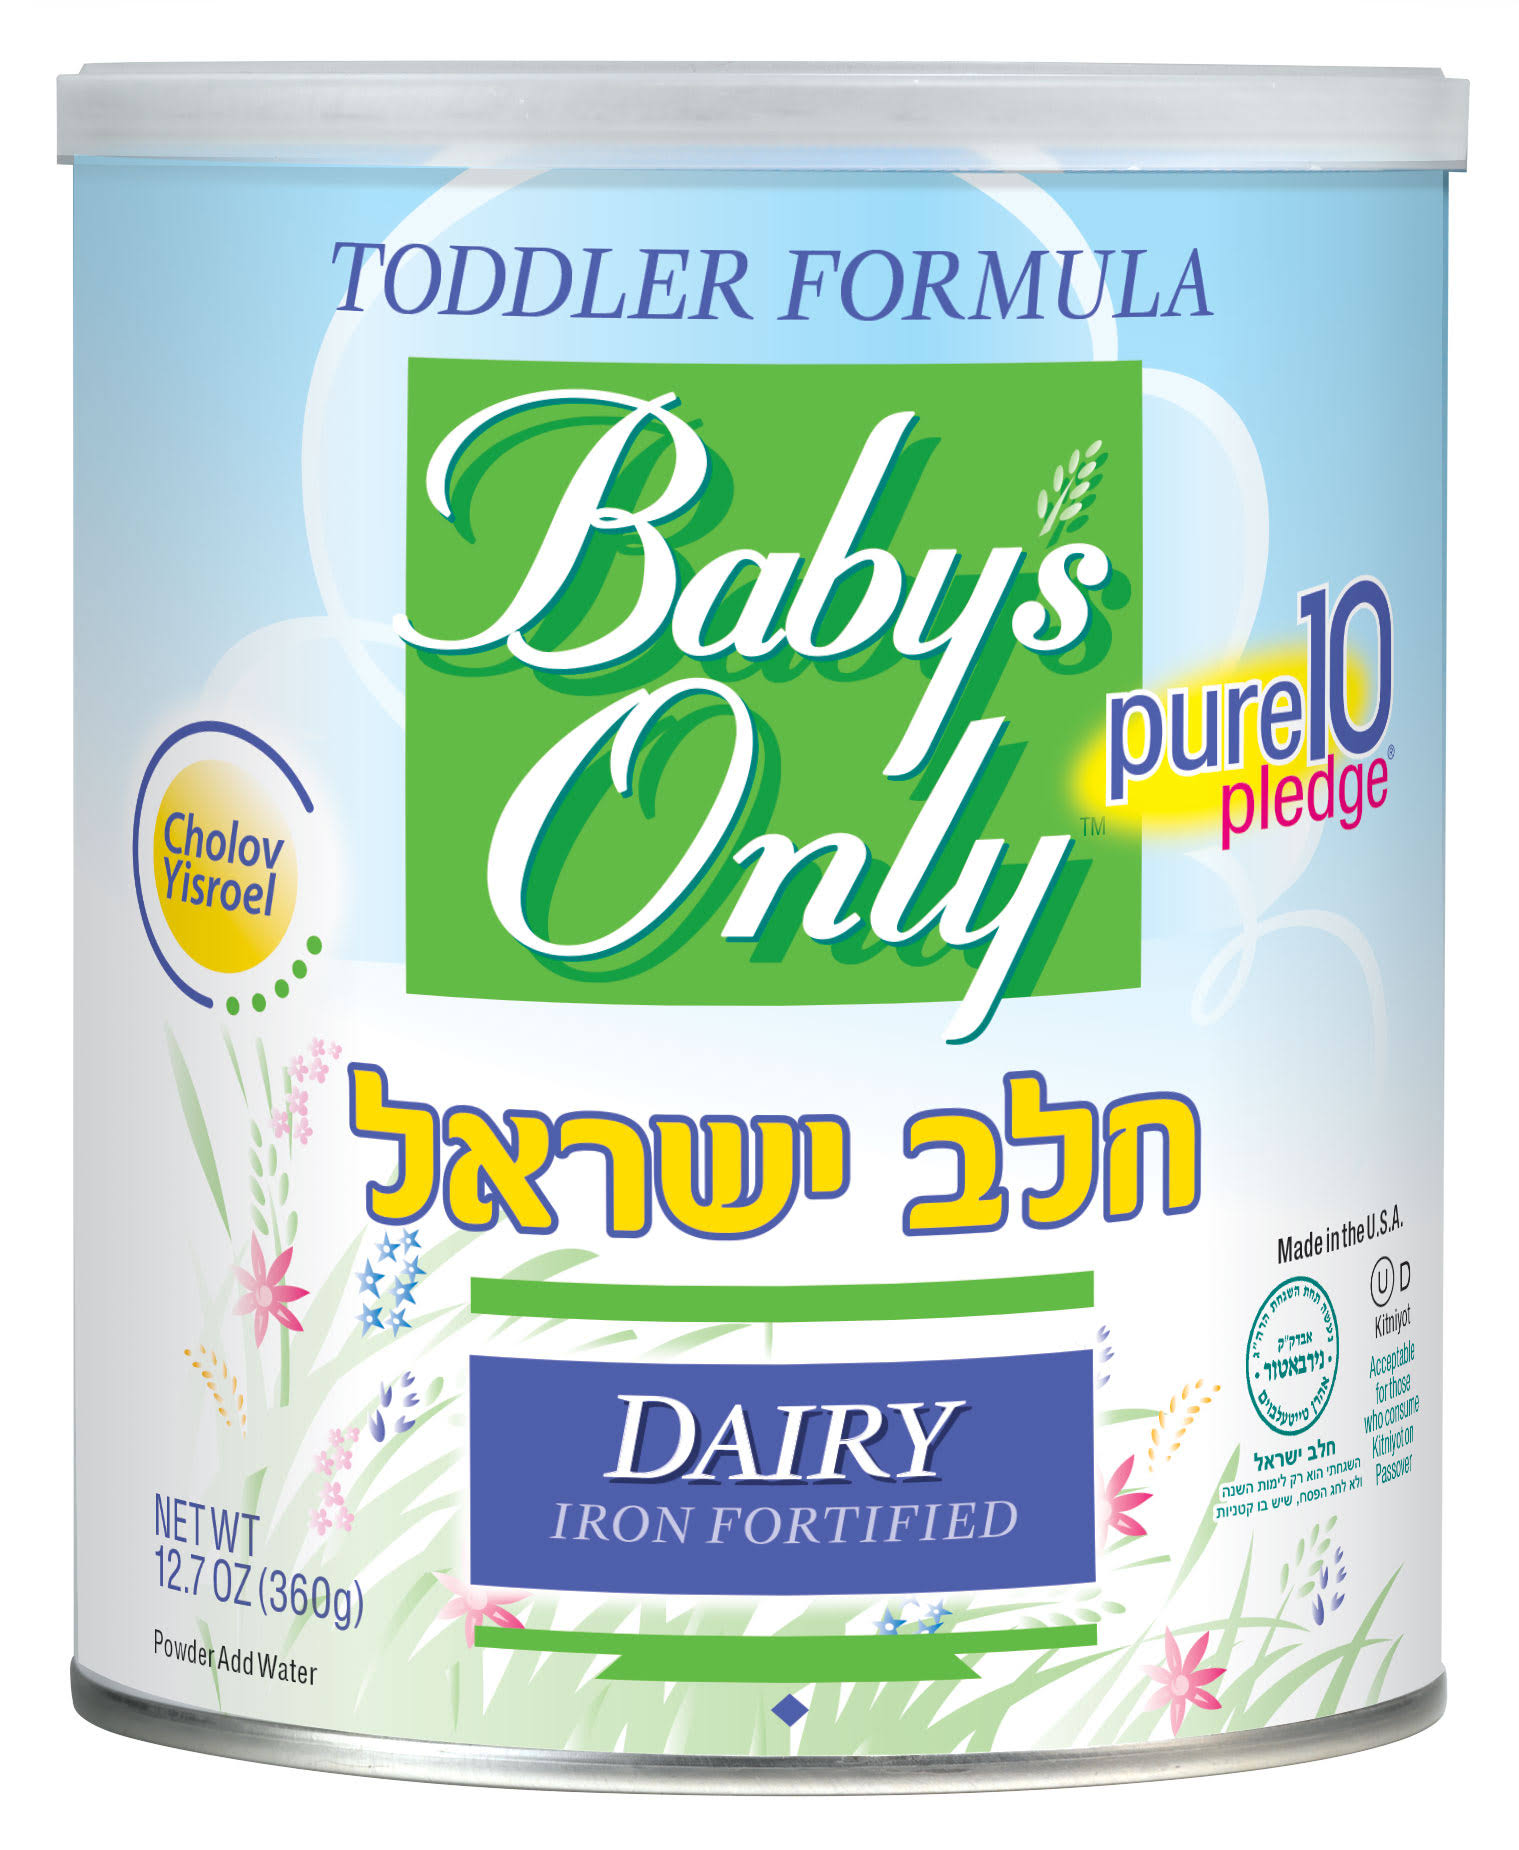 Baby's Only Cholov Yisroel Dairy Toddler Formula Powder - 12.7 oz canister